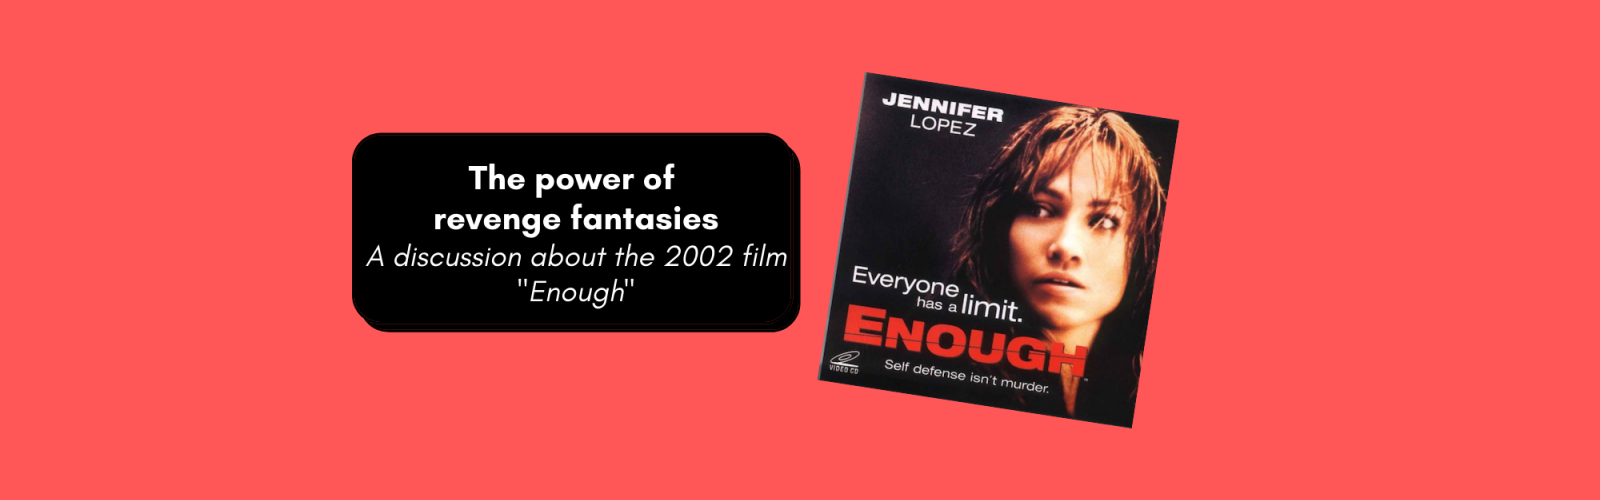 "A photo of Jennifer Lopez's movie Revenge with text that reads, ""The power of revenge fantasies."""